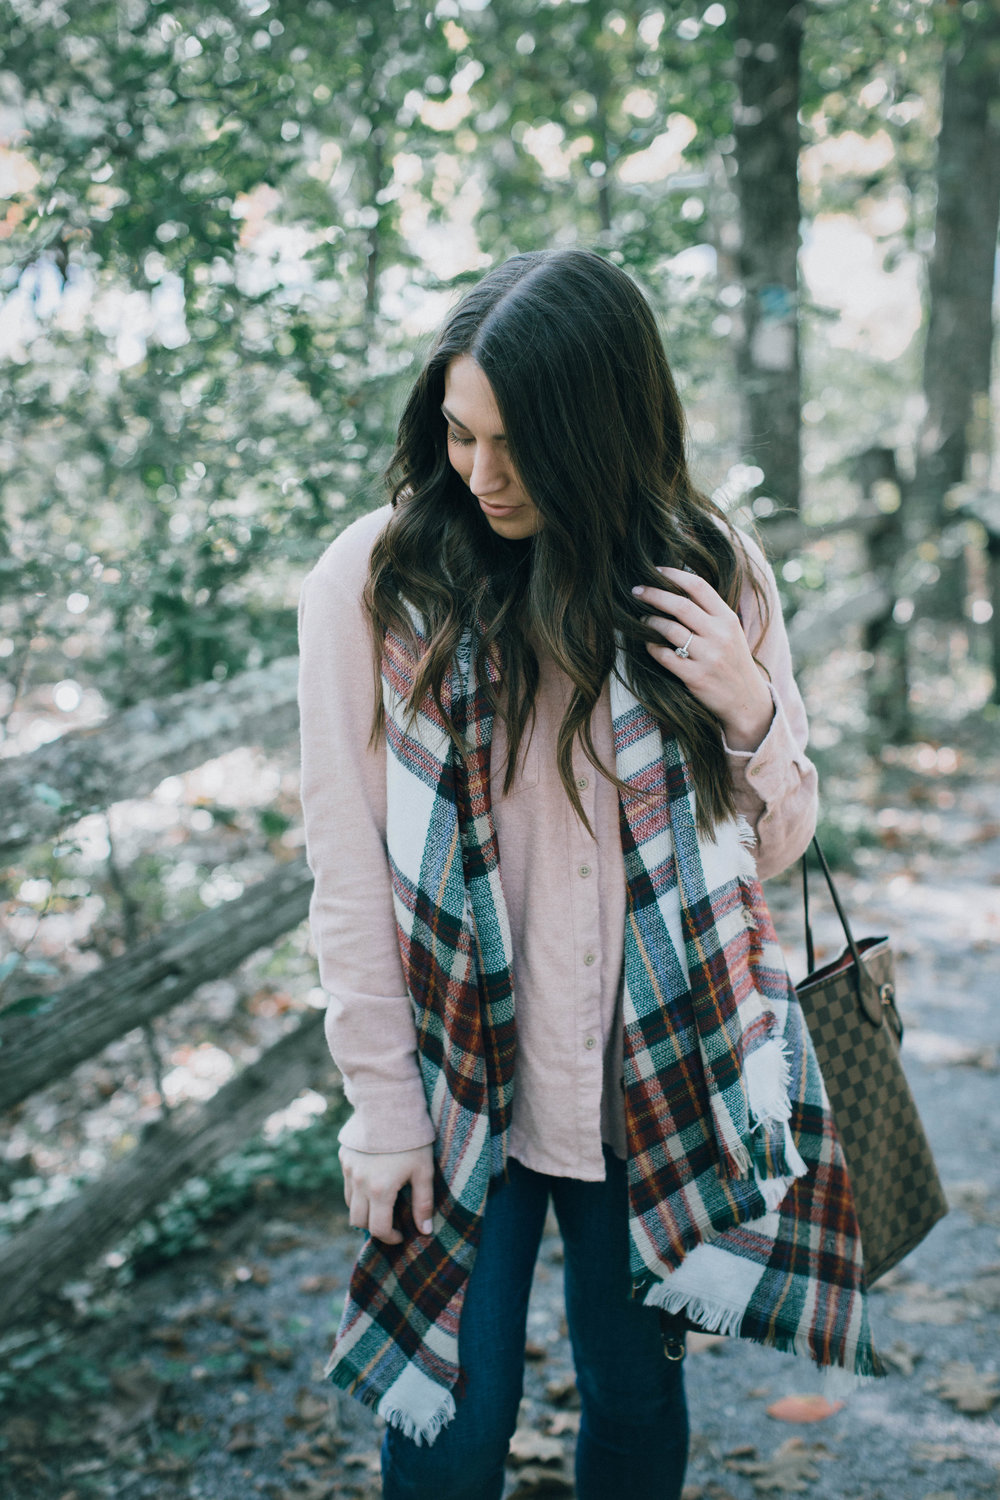 styling blush for fall / fall fashion / fall outfit idea / fall outfit inspiration / fall feels / blush flannel / plaid blanket scarf